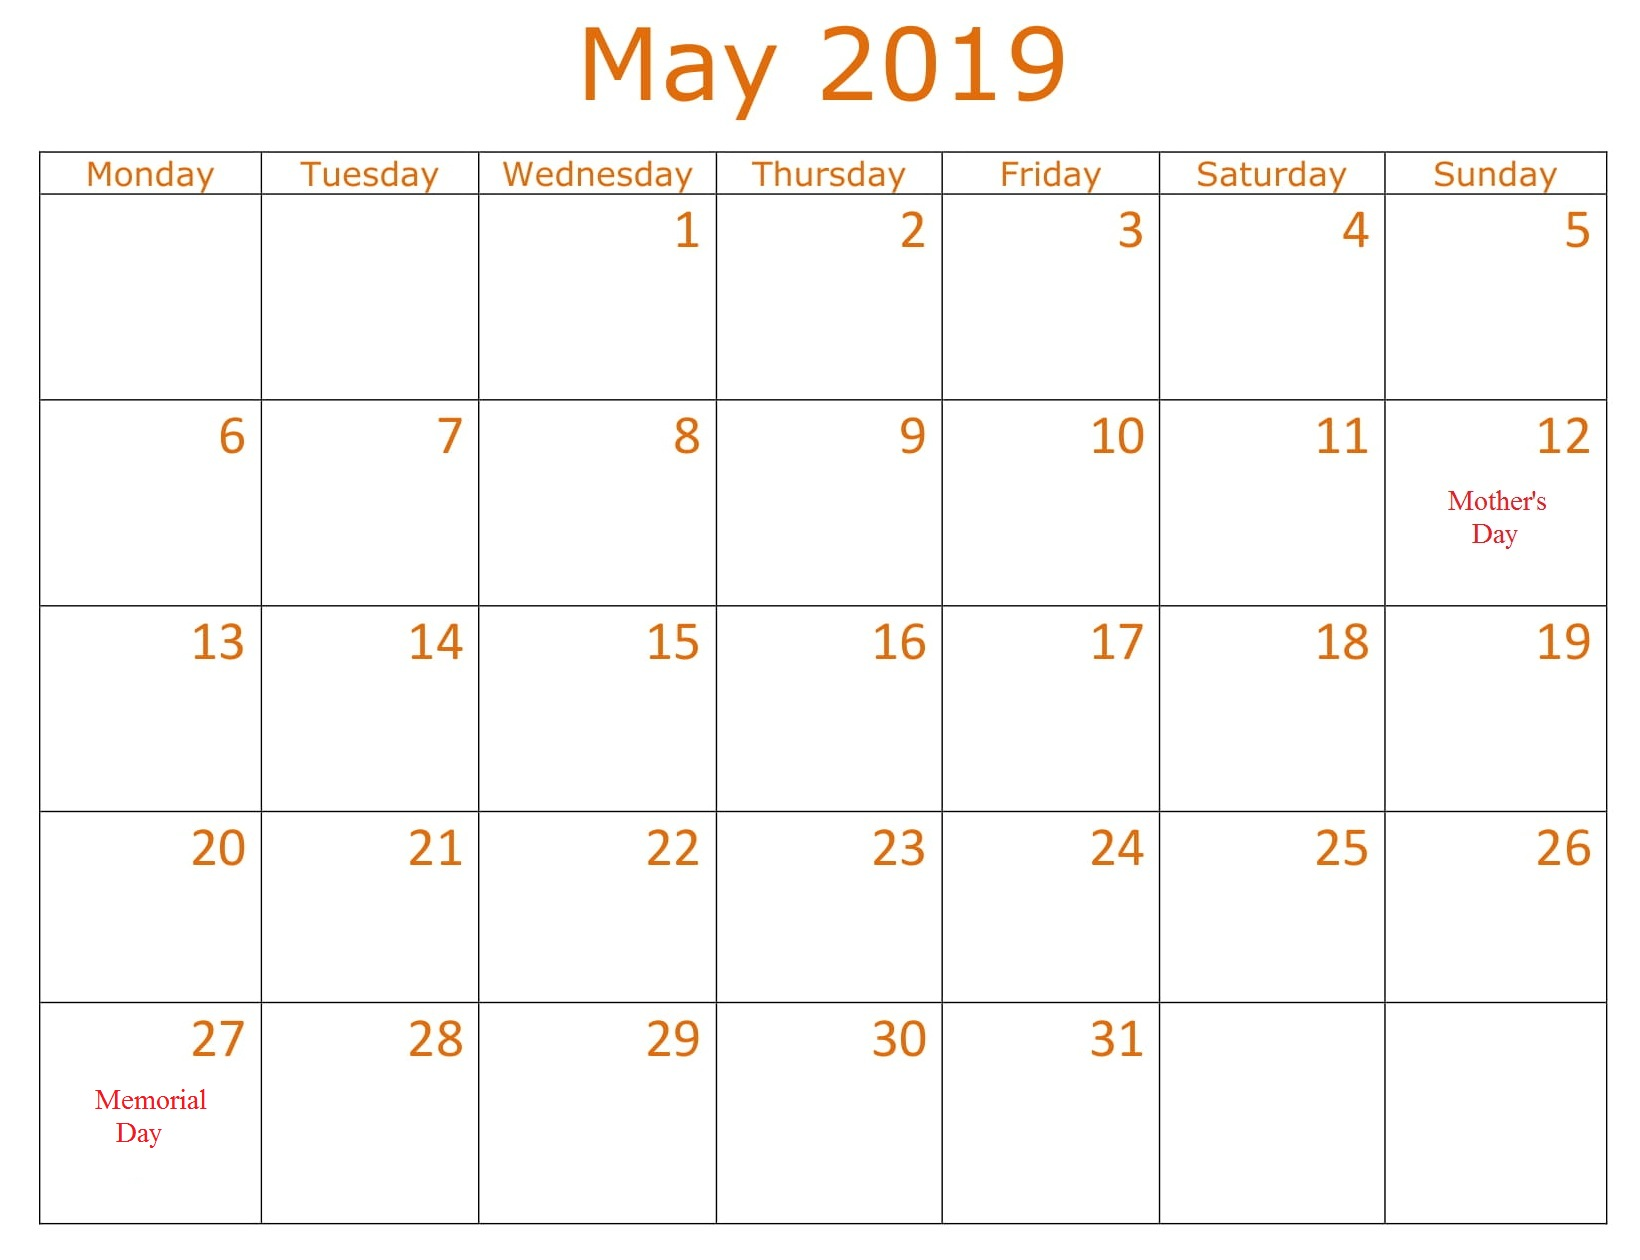 May Table Calendar 2019 With Holidays